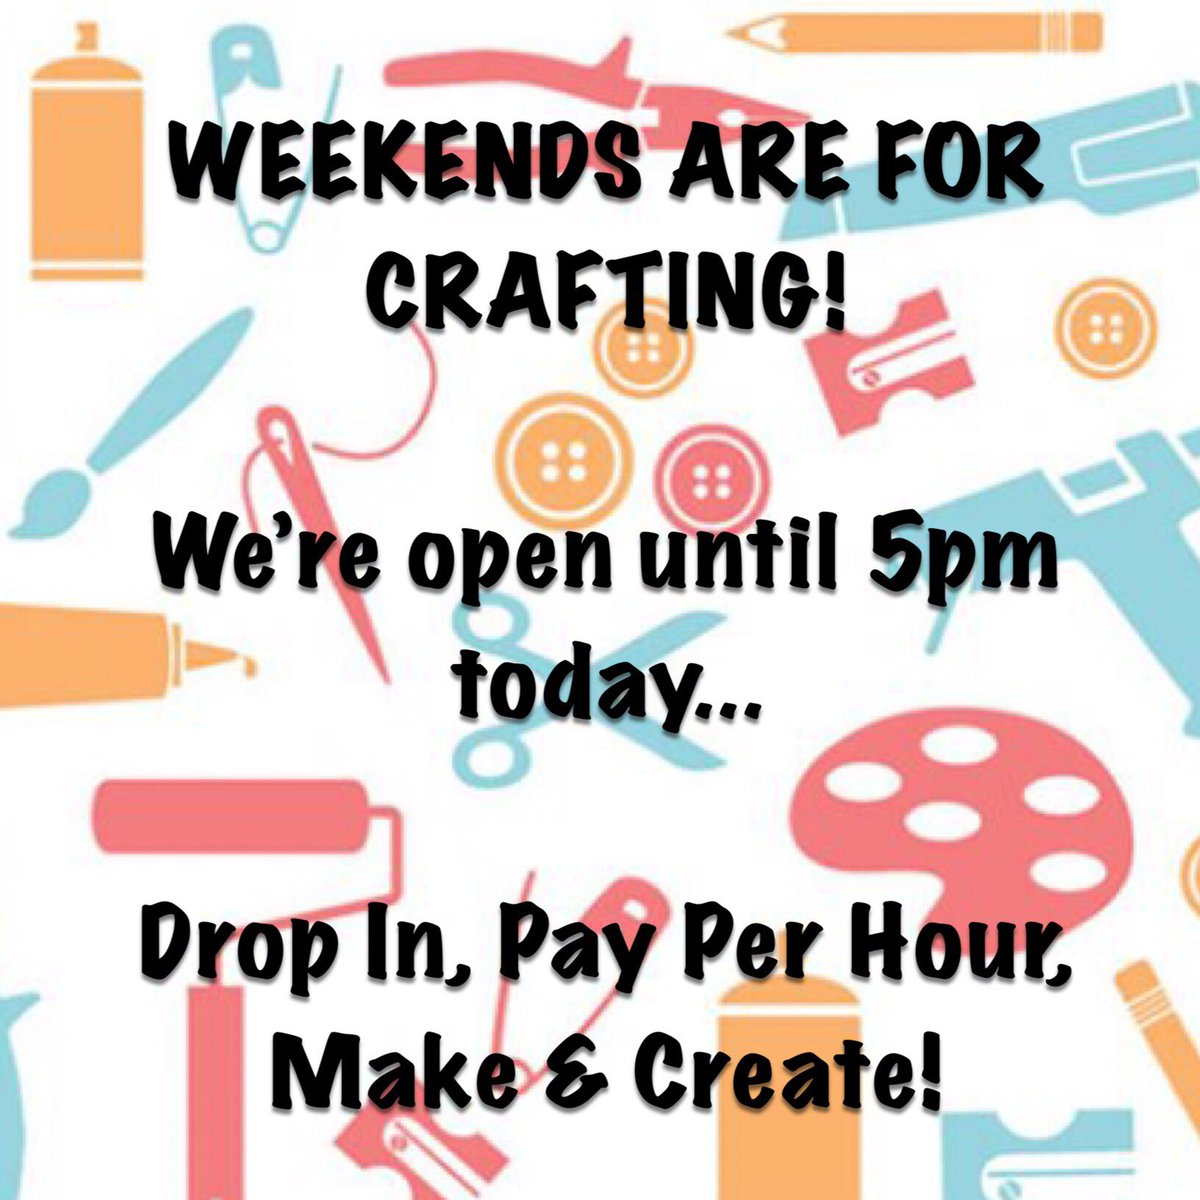 Happy Saturday crafters   Come and shelter from the miserable wet weather at Craft House today! We've got lots of new stock too, including LOL dolls, tinkerbell, trucks and tractors! #whitleybay #northtyneside #nefollowers #ourwhitleybay #northtynesidedaily #northeastenglandpic.twitter.com/xpgBUM5OjE